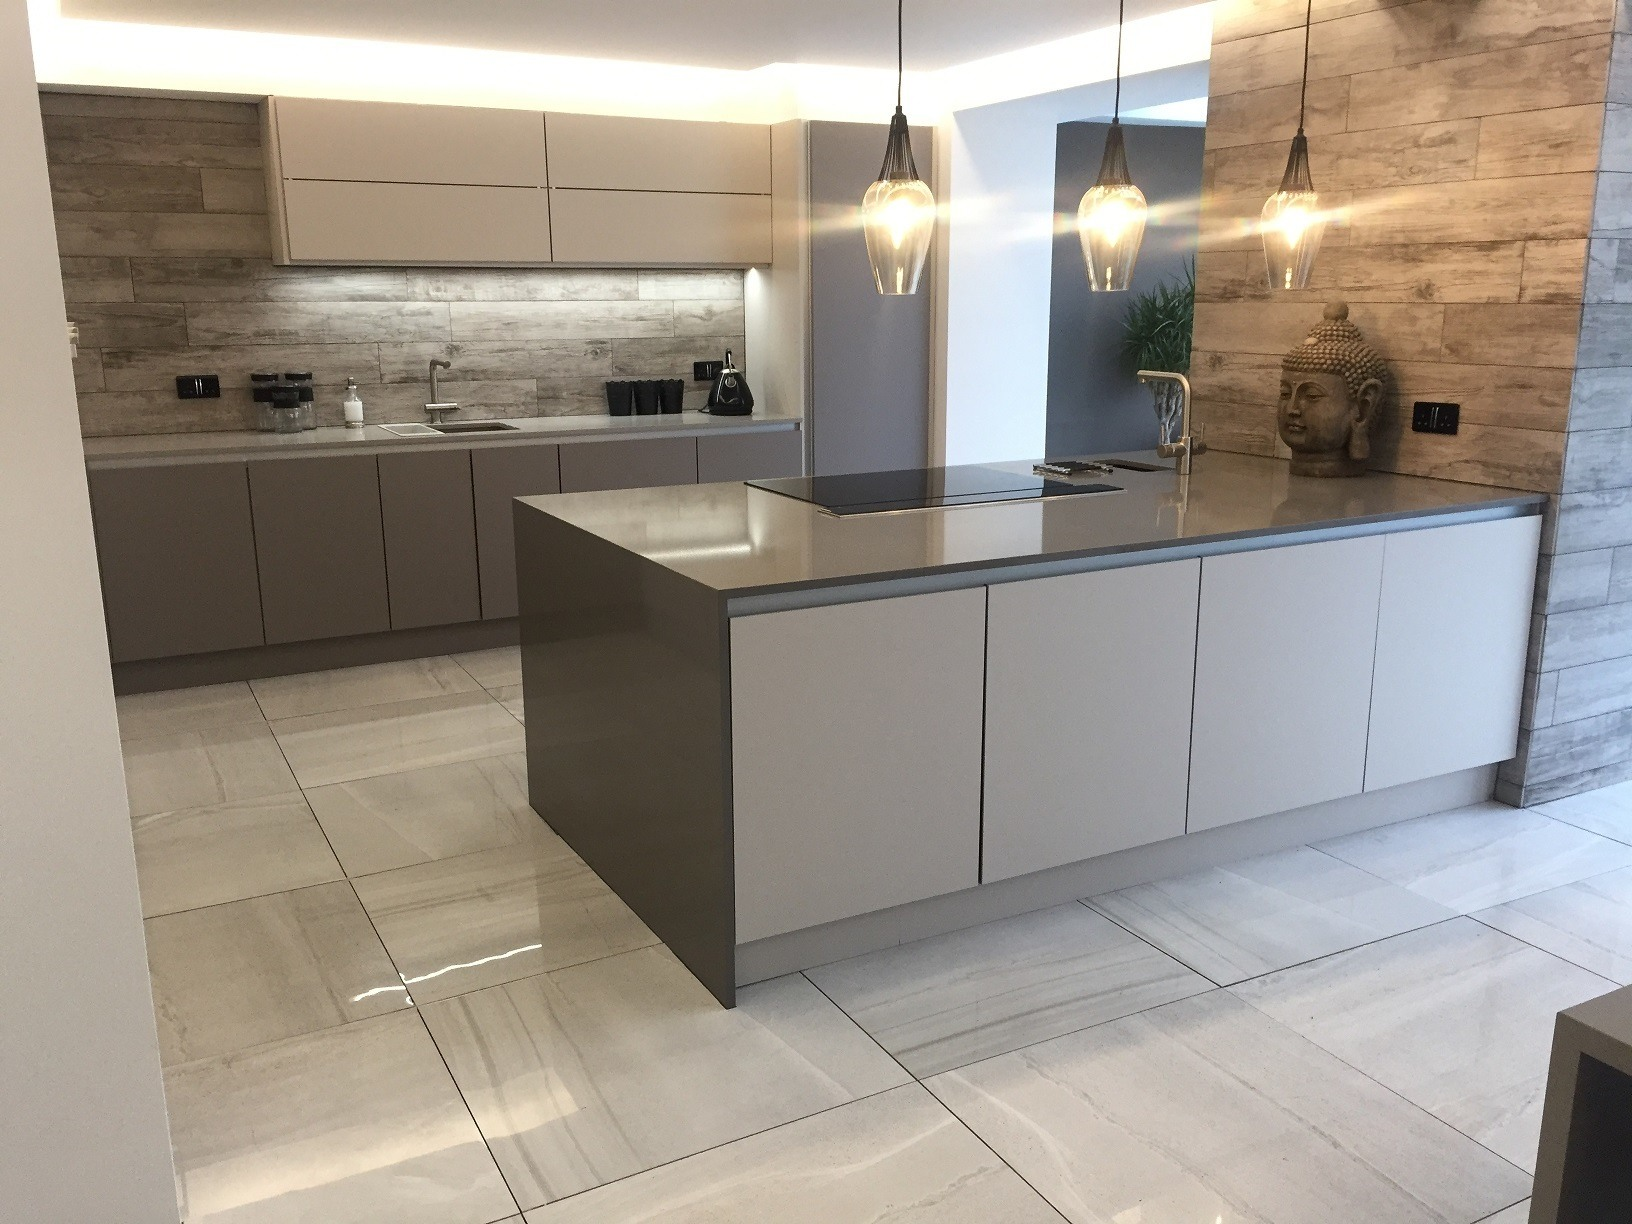 Coventry kitchens and bathrooms - Find Out More Find Us Contact Us